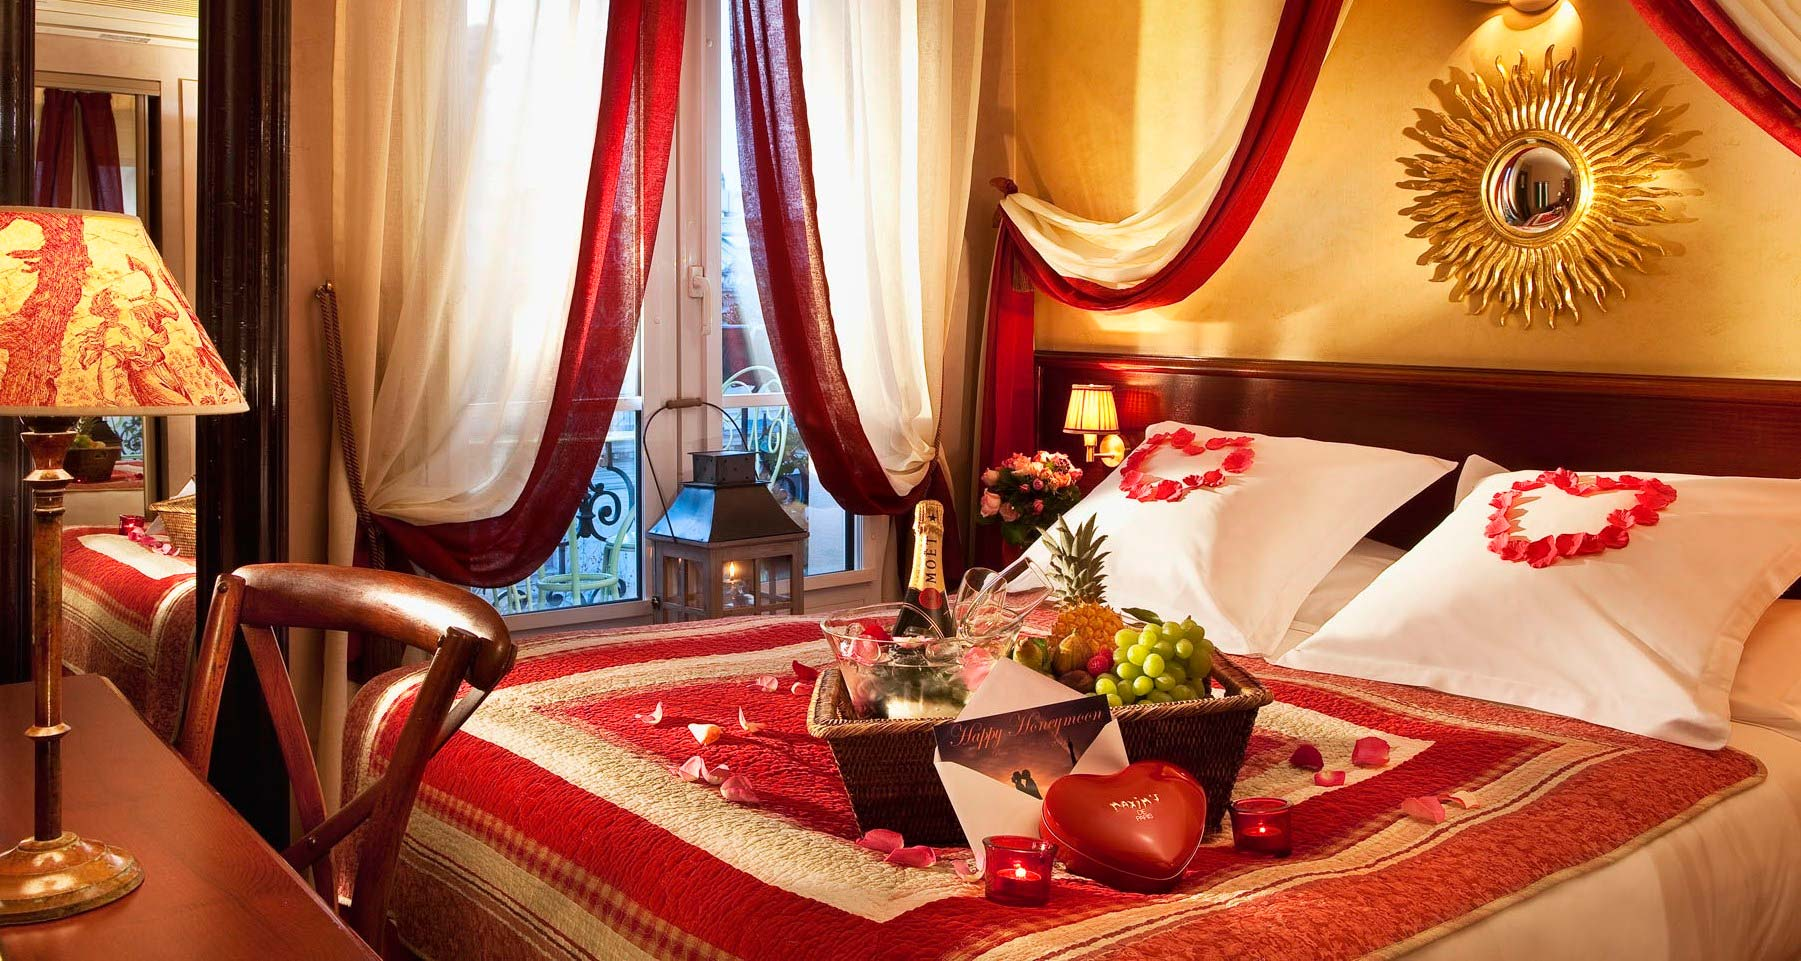 Romantic Honeymoon Suite Bedroom Design In Red White